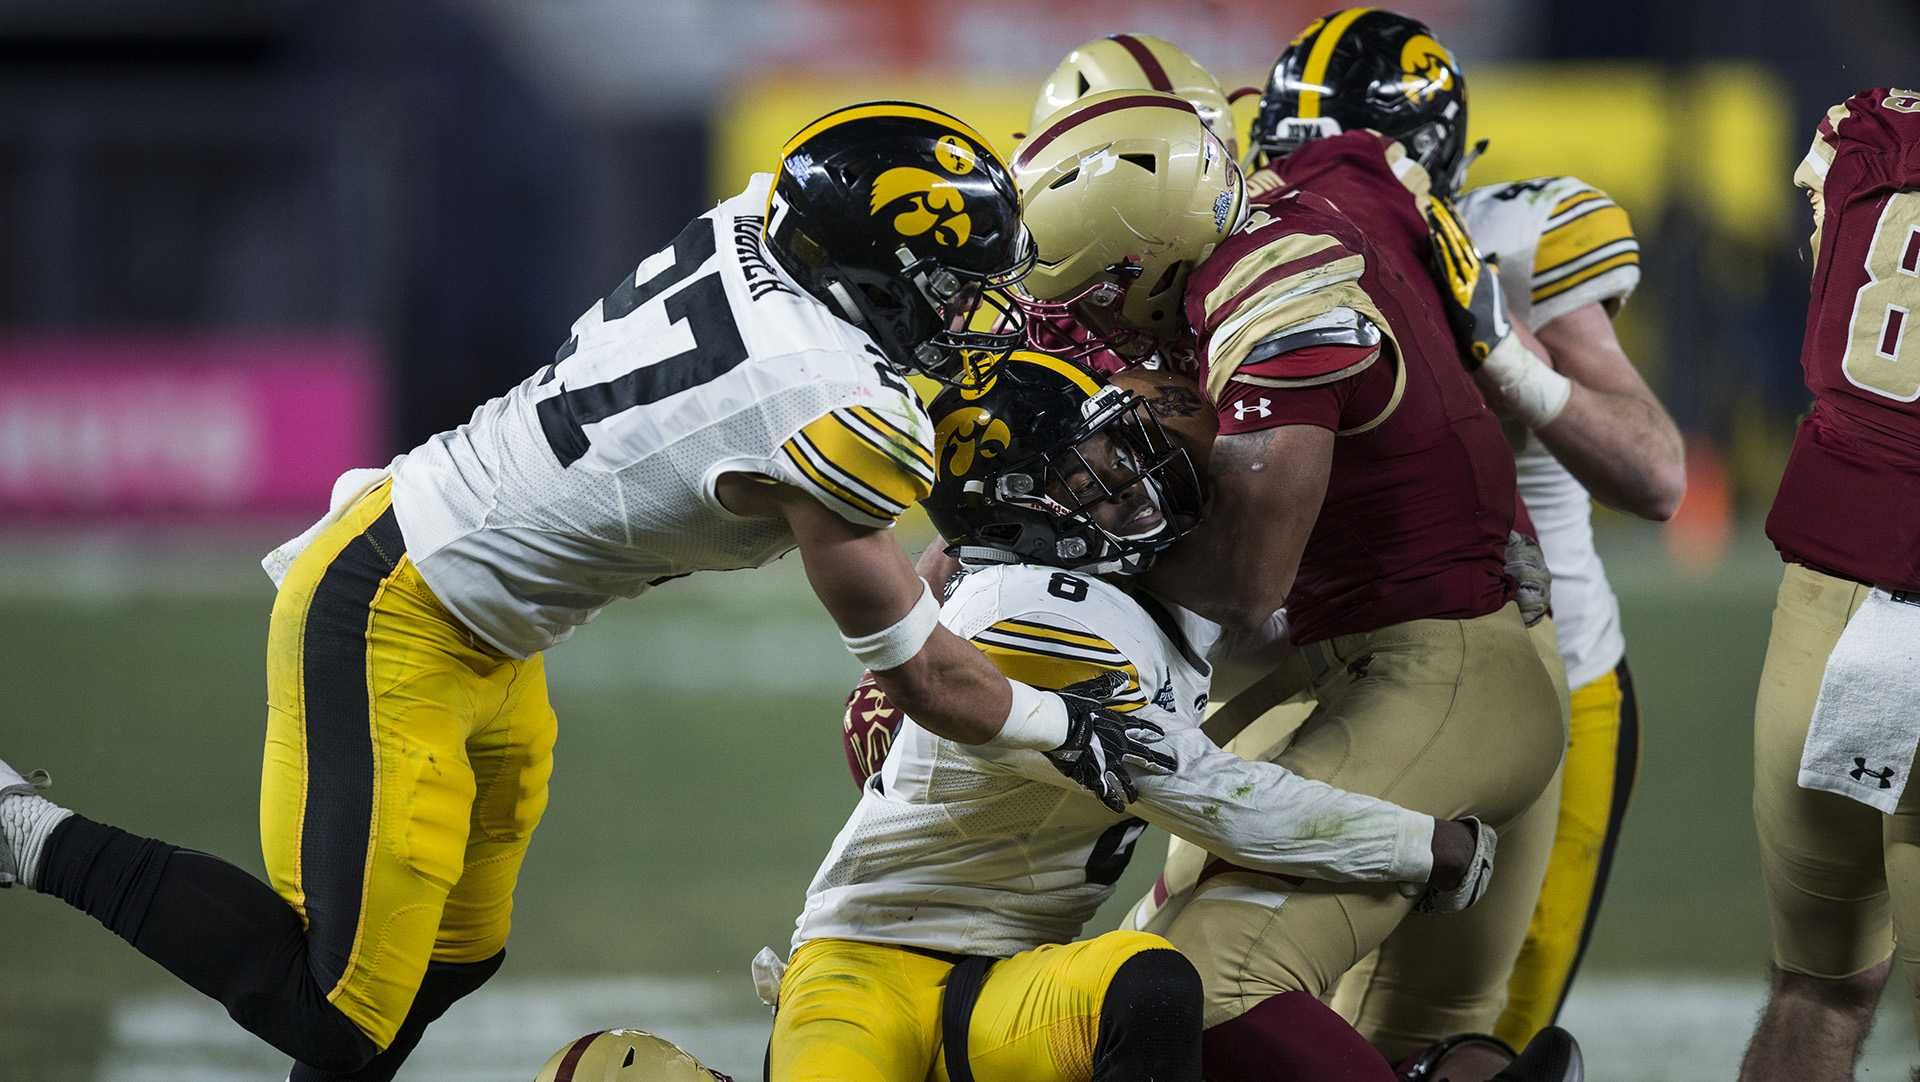 Iowa's Amani Hooker (27) and Matt Hankins (8) sack Boston College quarter back Darius Wade (4) during the New Era Pinstripe Bowl at Yankee Stadium in New York on Wednesday, Dec. 27. The Hawkeyes went on to win 27-20.